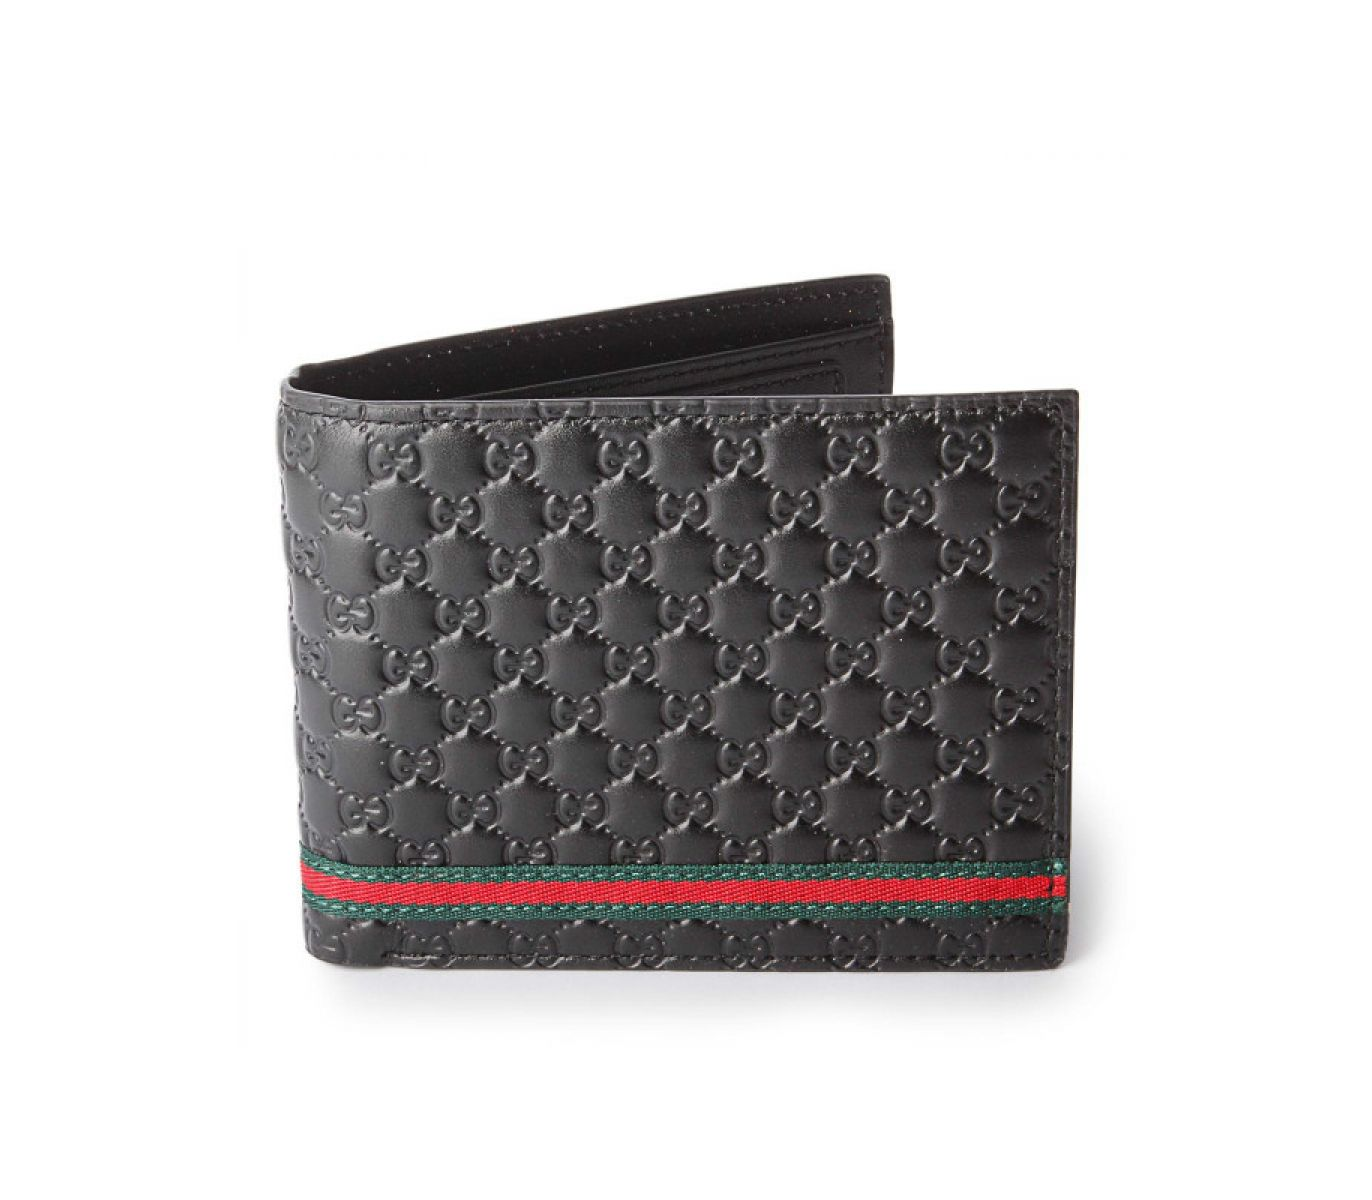 6c4f992d9162 Men s Fashion    Fashion Accessories    Belts   Wallets    GUCCI Micro  Guccissima Web with Green and Red Trim Wallet - Black - Genuine Leather -  Savers.pk ...